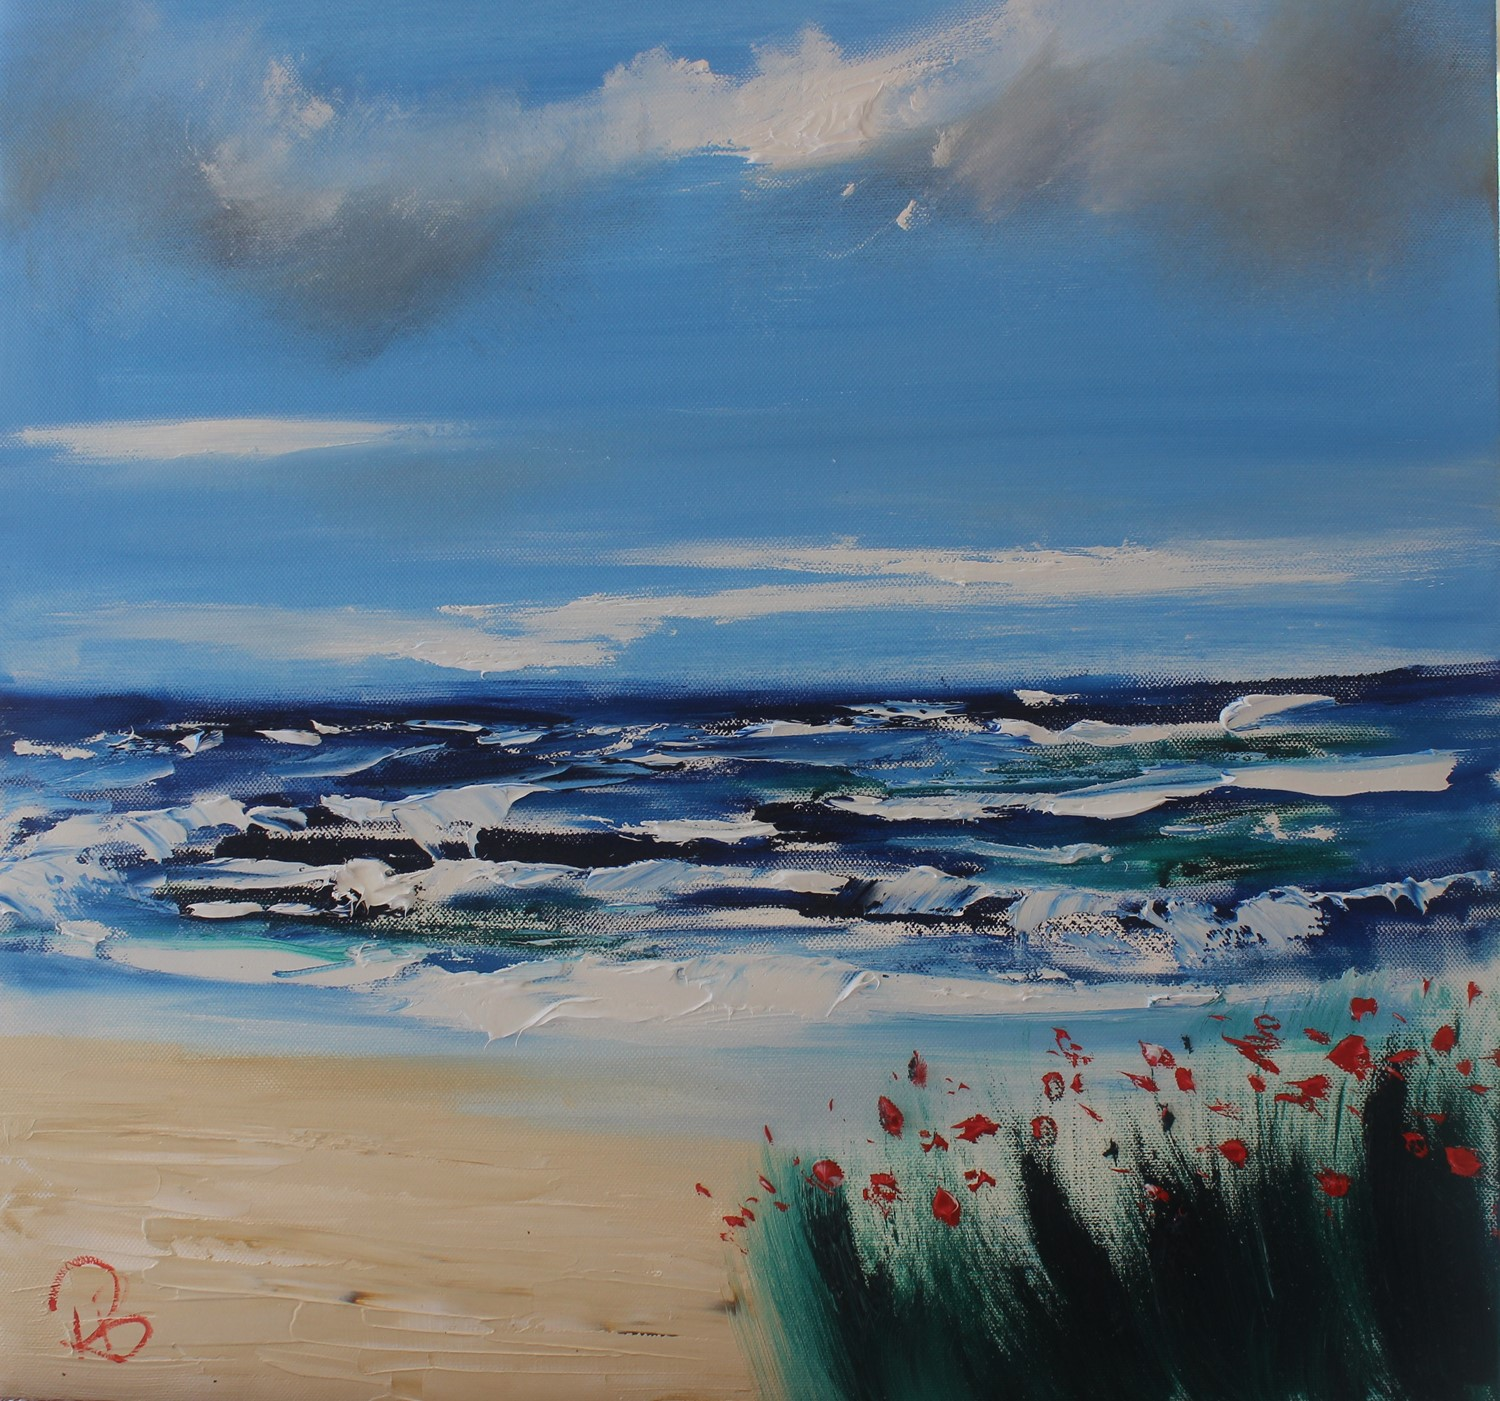 'Bright Sky' by artist Rosanne Barr